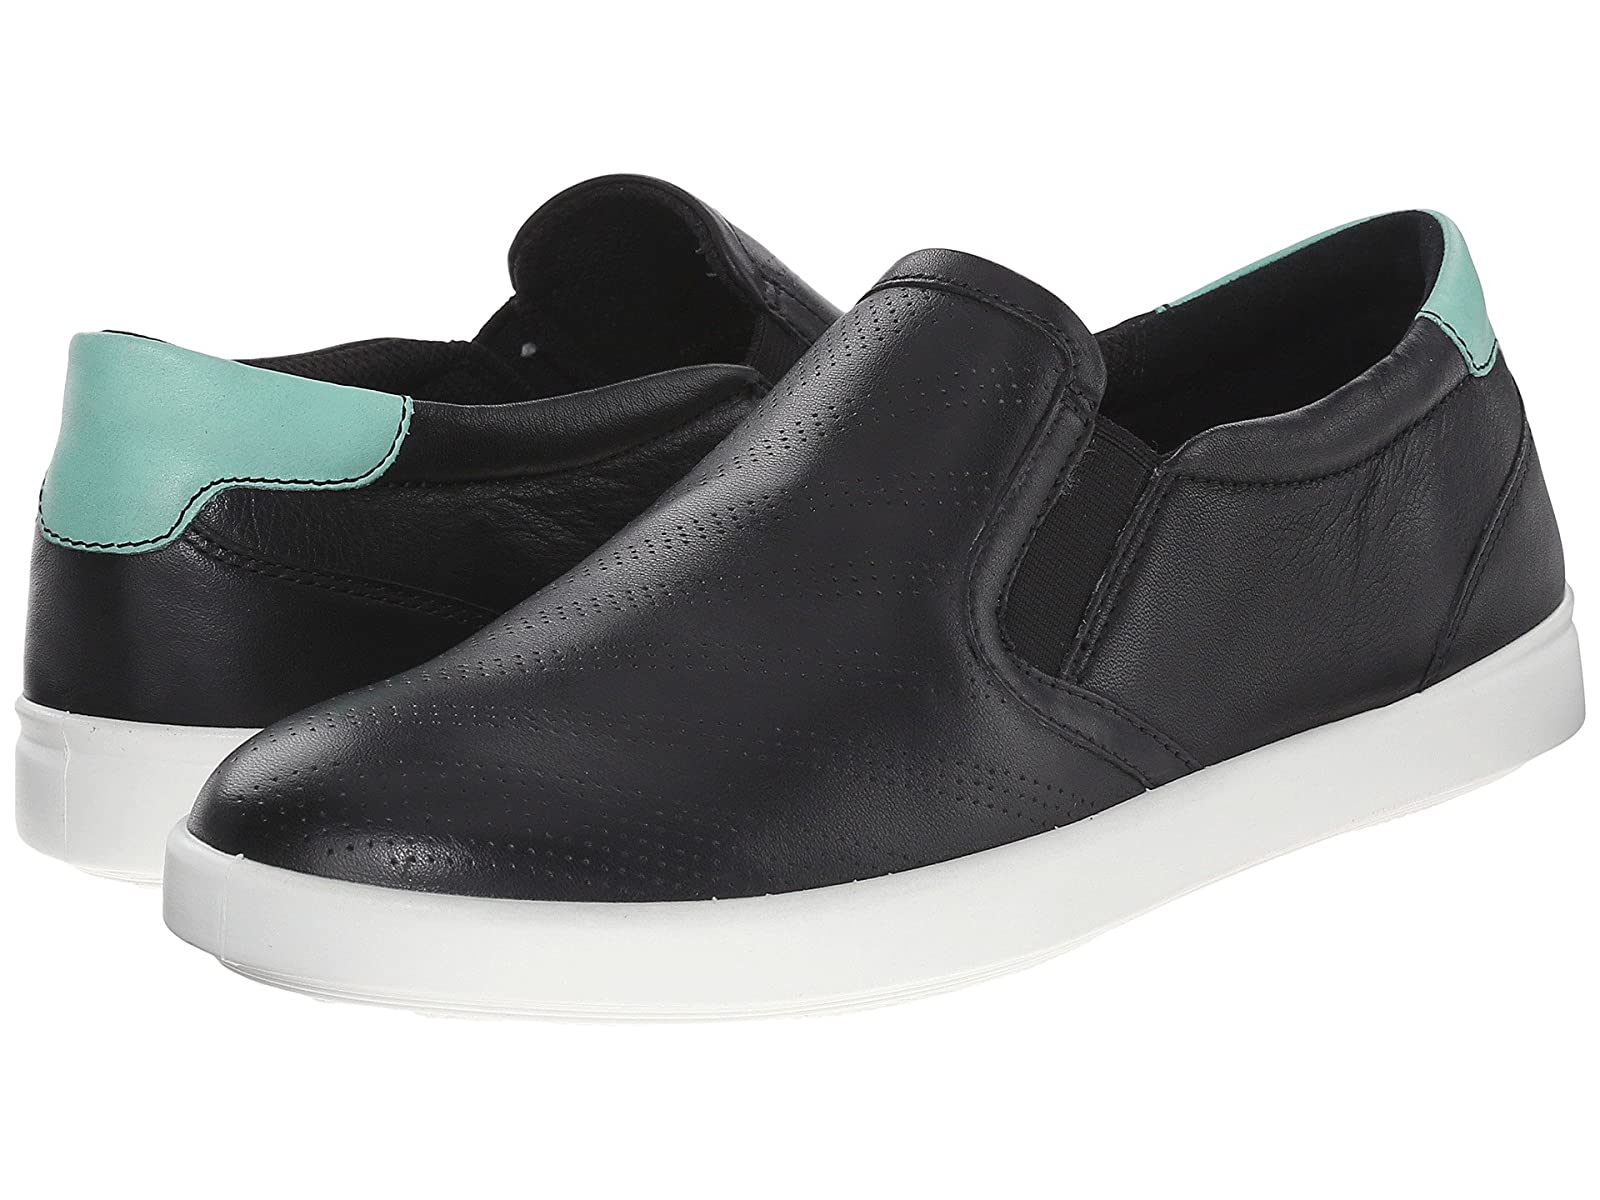 ECCO Aimee Sport Slip-OnAtmospheric grades have affordable shoes